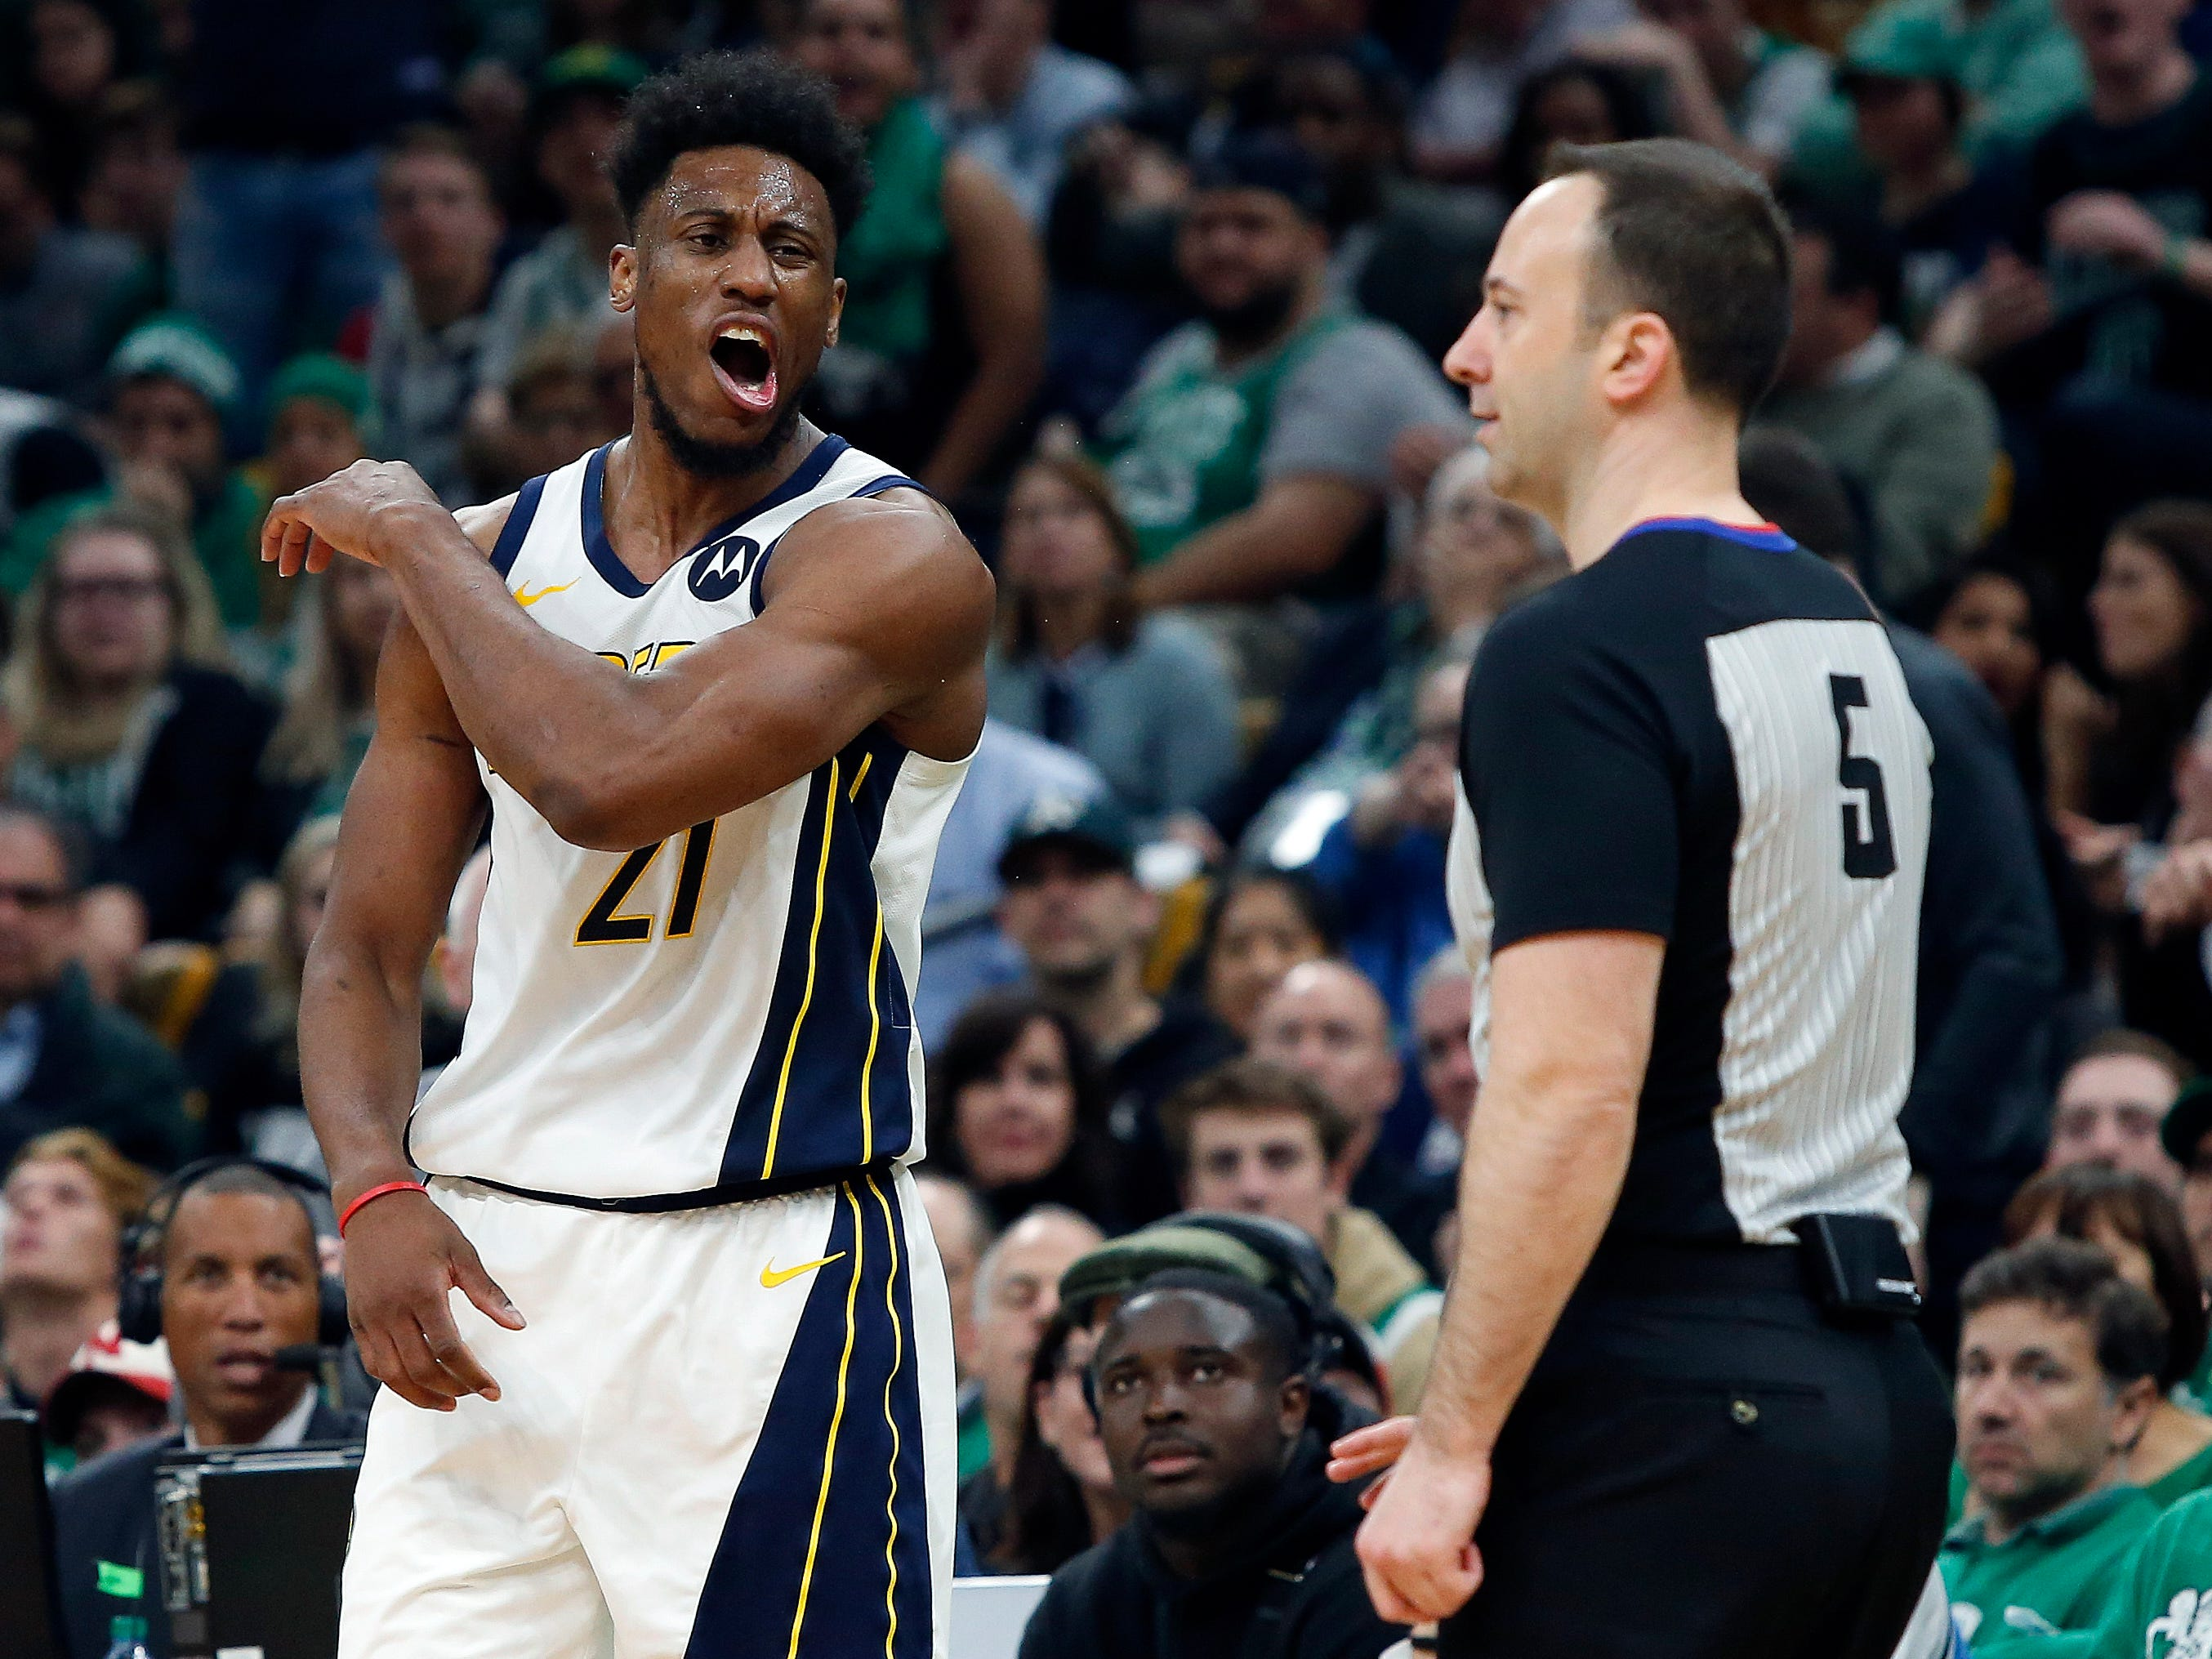 Indiana Pacers' Thaddeus Young reacts to a foul called against him by referee Kane Fitzgerald (5) during the second quarter in Game 1 of a first-round NBA basketball playoff series against the Boston Celtics, Sunday, April 14, 2019, in Boston.